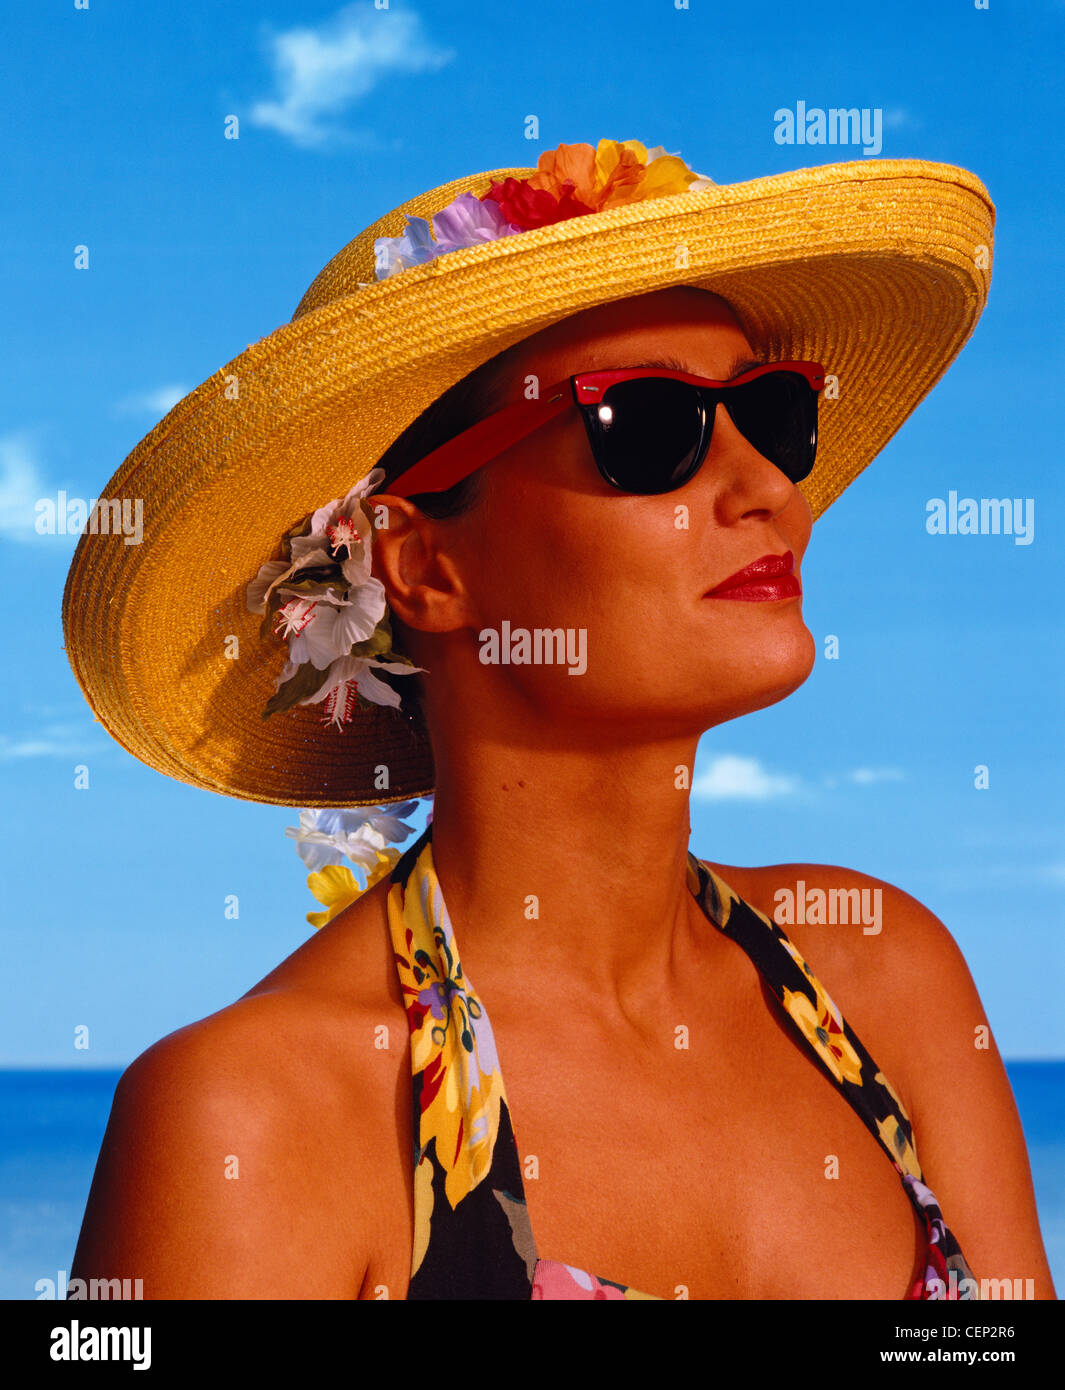 WD1453-41 Female wearing sunglasses and sun hat with a suntan - Stock Image